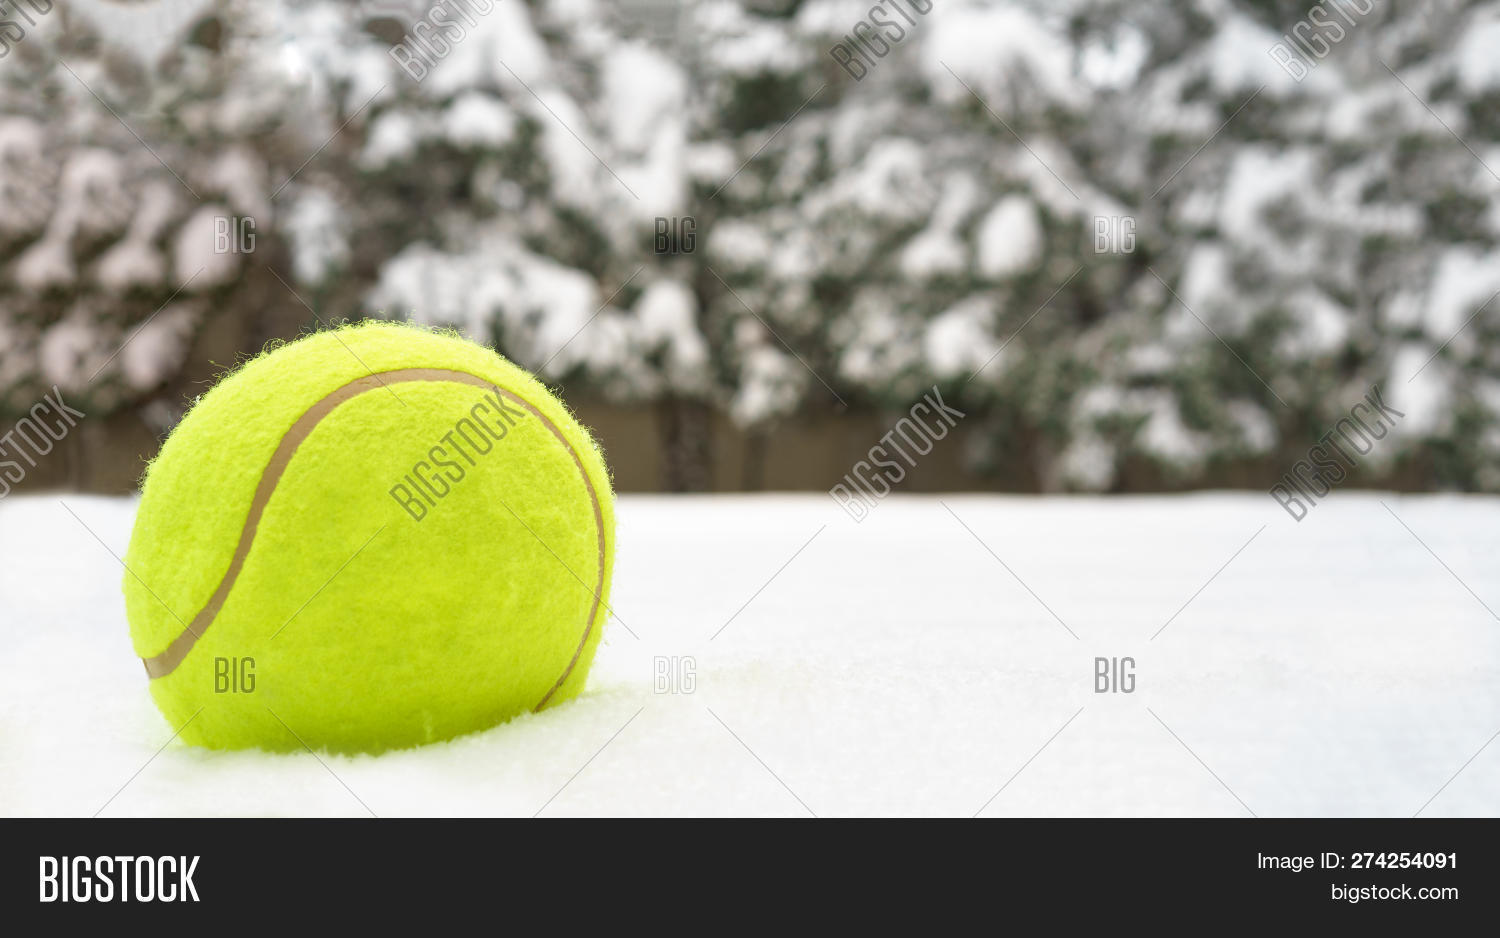 Christmas Sports Background.Tennis Christmas Ball Image Photo Free Trial Bigstock